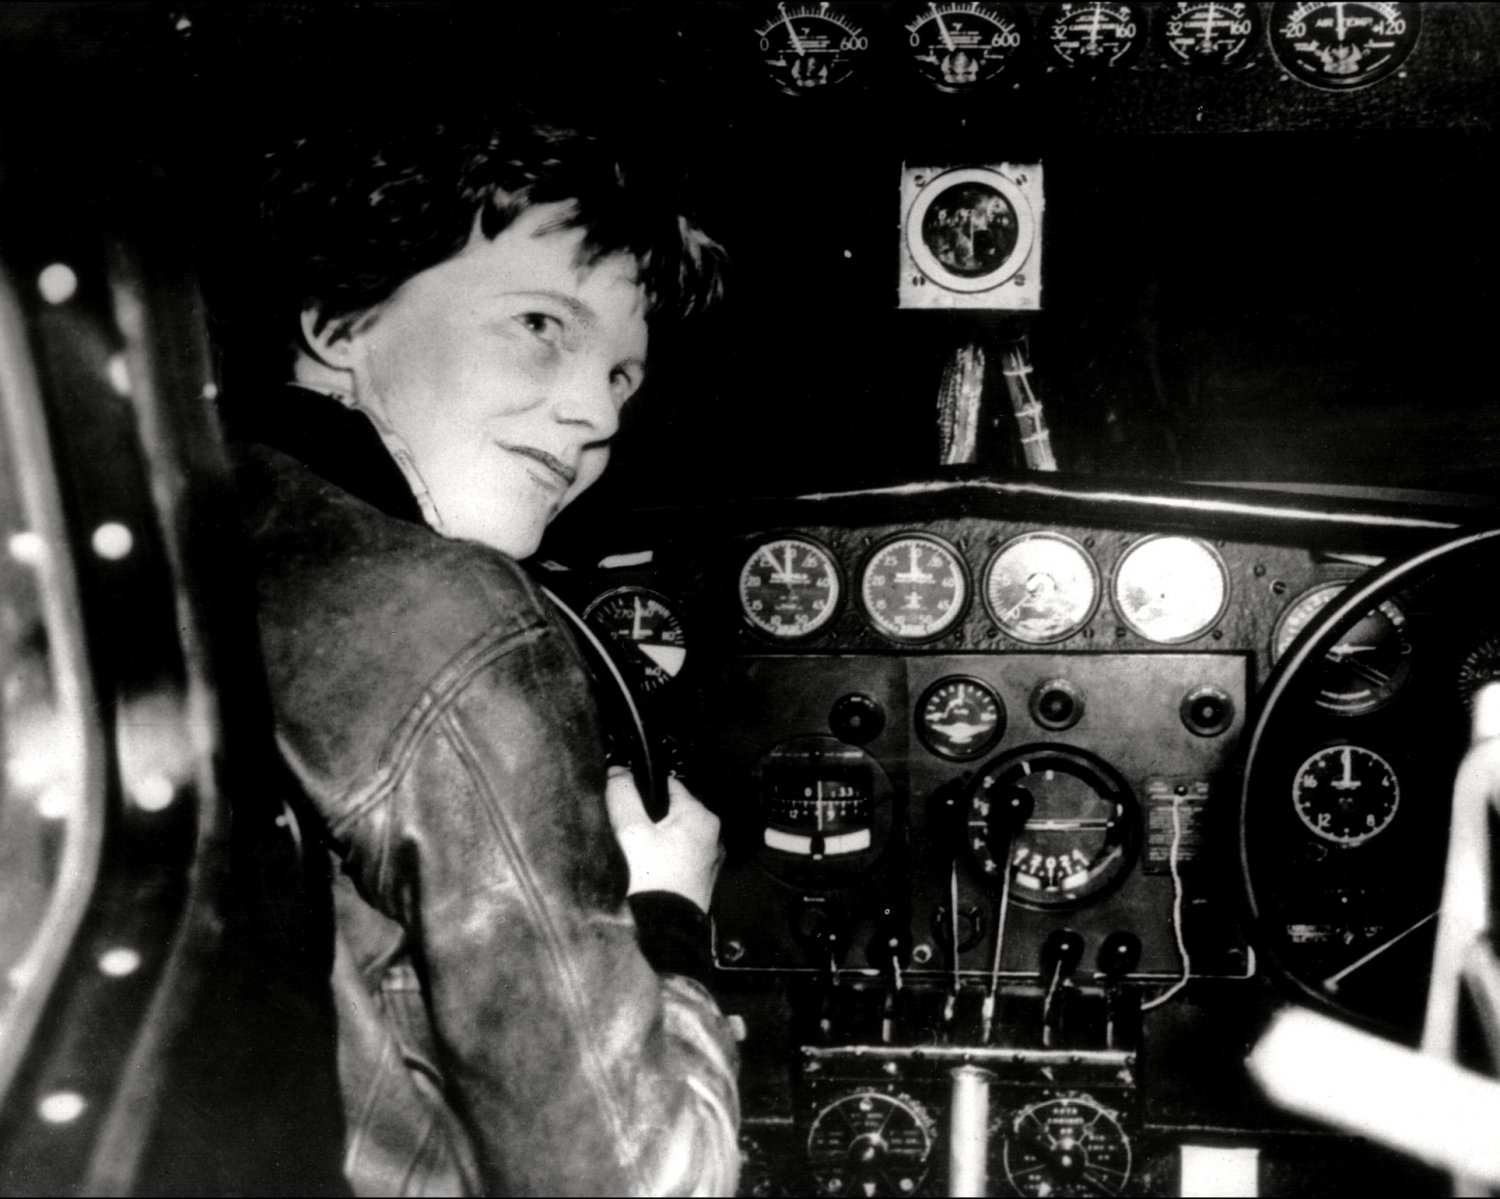 PILOT AMELIA EARHART IN COCKPIT - 8X10 PHOTO (ZZ-131)